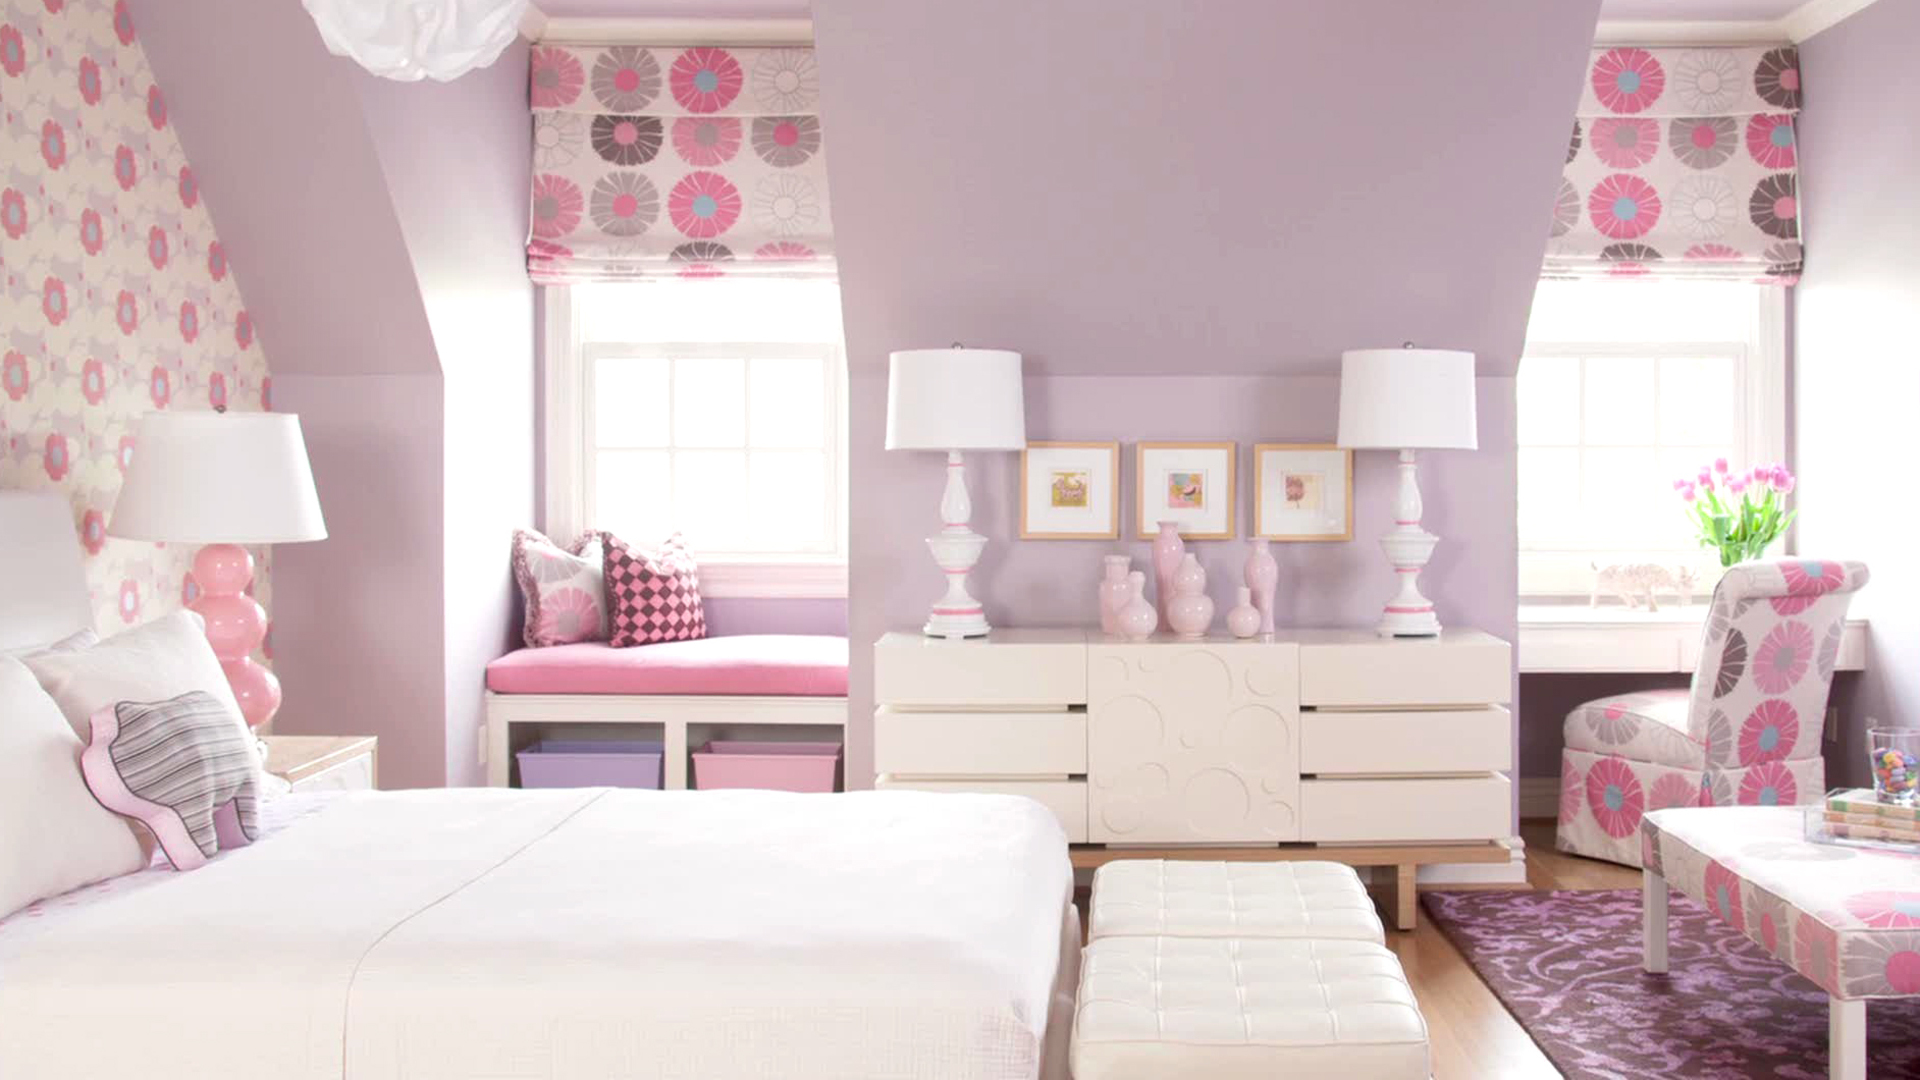 Small Bedroom Painting Ideas - Paint Colors for Small Rooms | HGTV